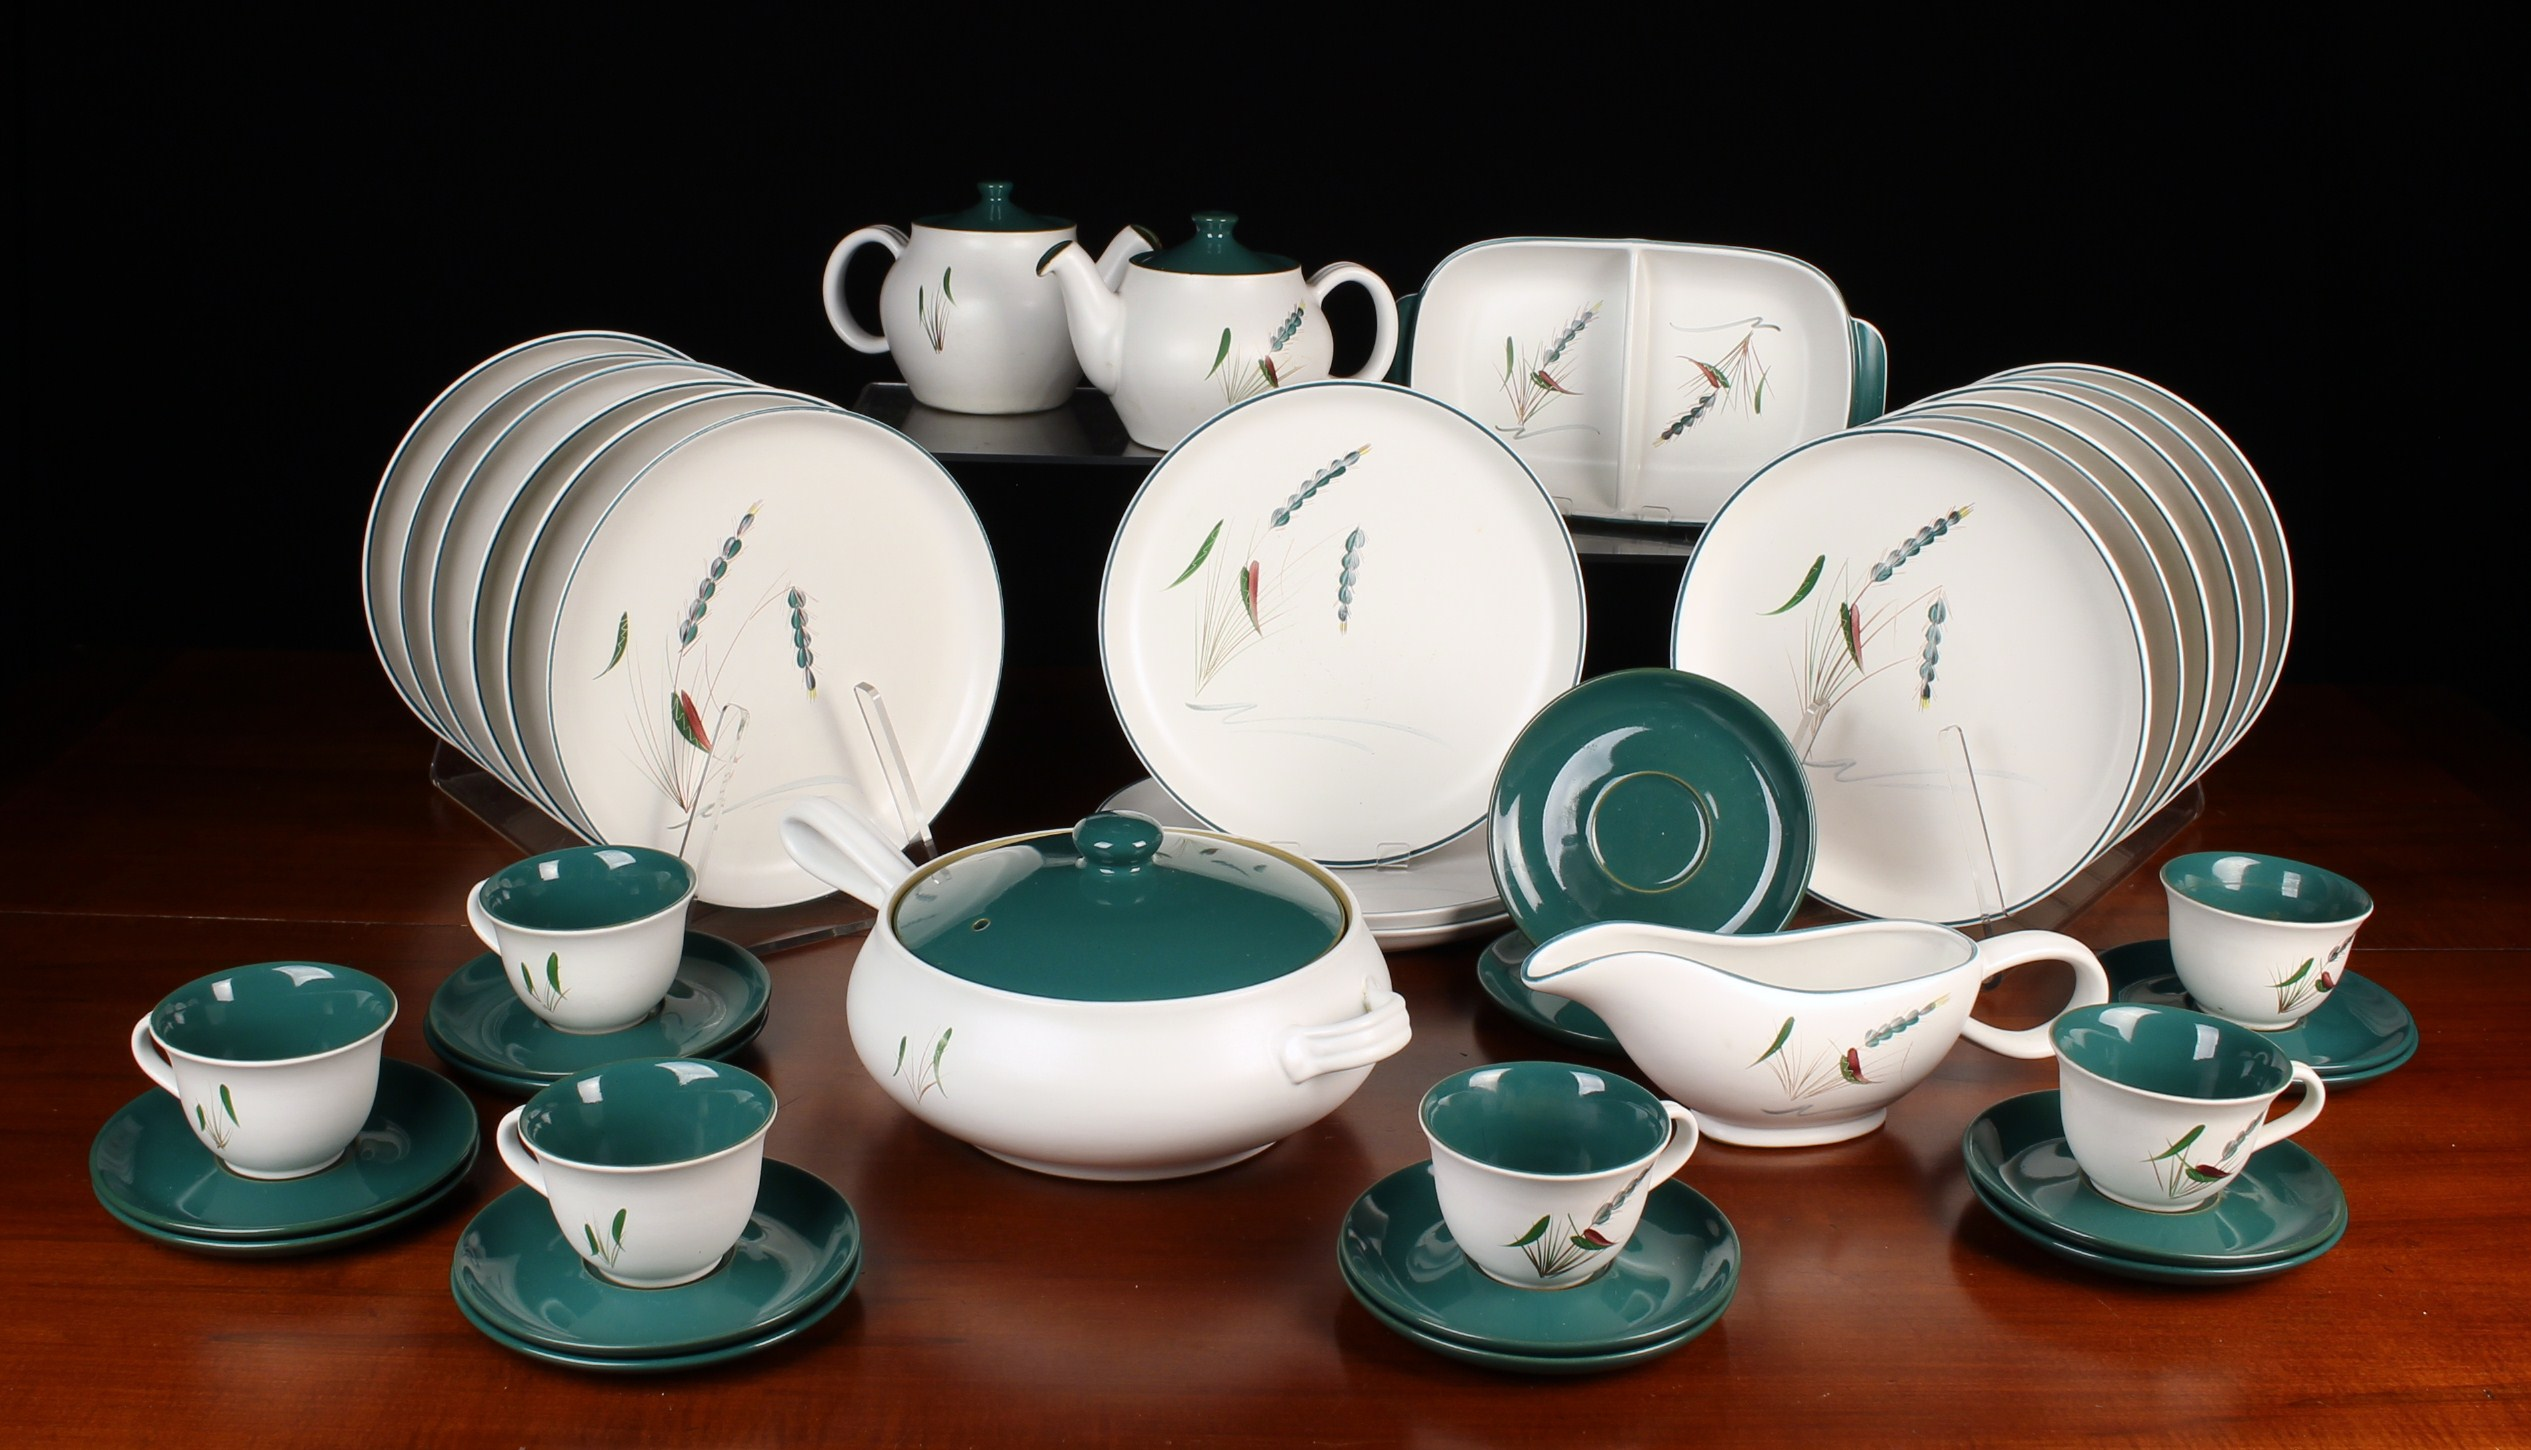 An Extensive Collection of Vintage Denby 'Greenwheat' Oven-proof Tableware by A.